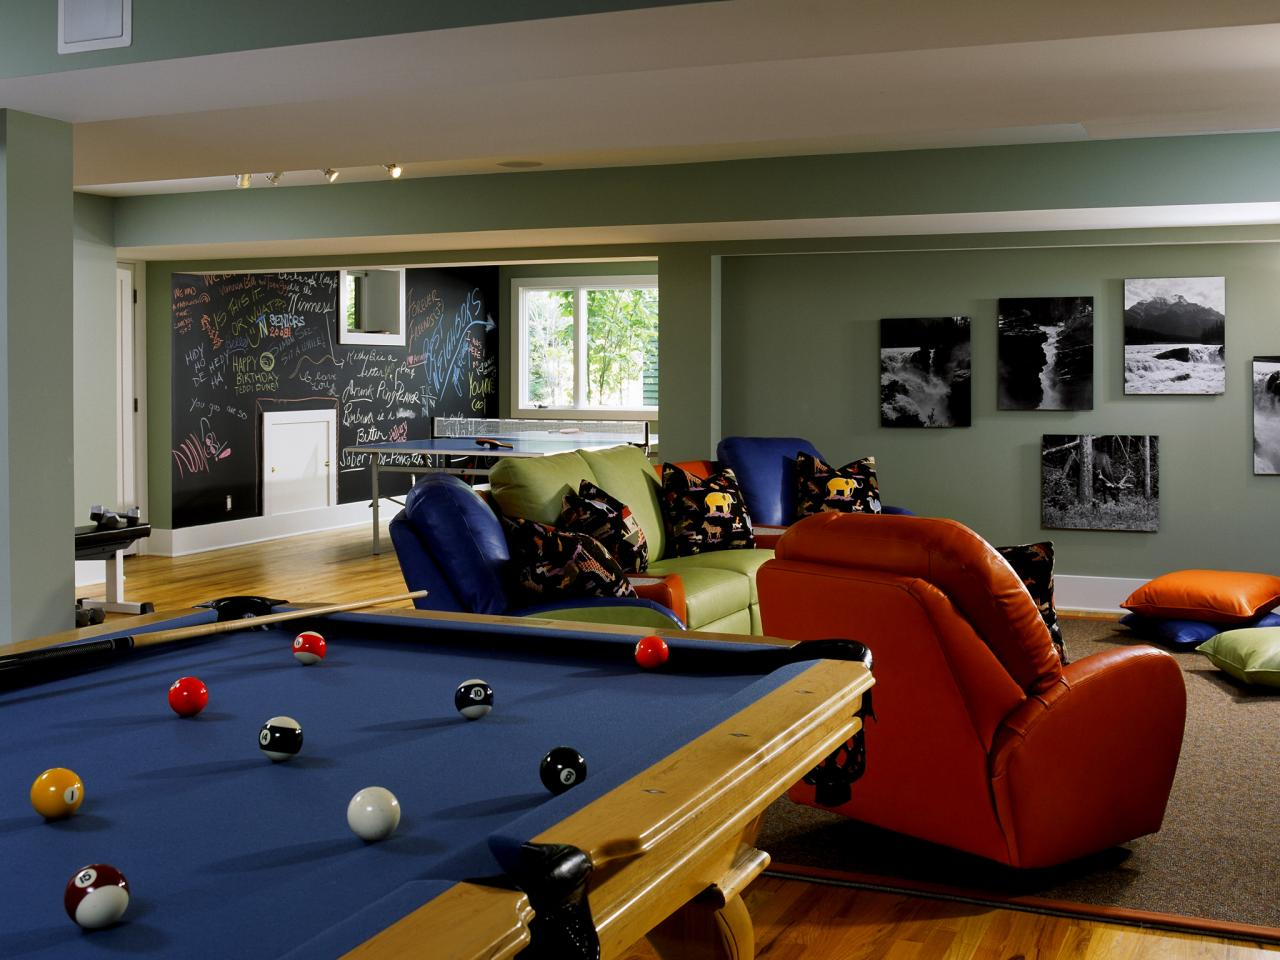 Basement kids game room - Fredman_mediaroom_h